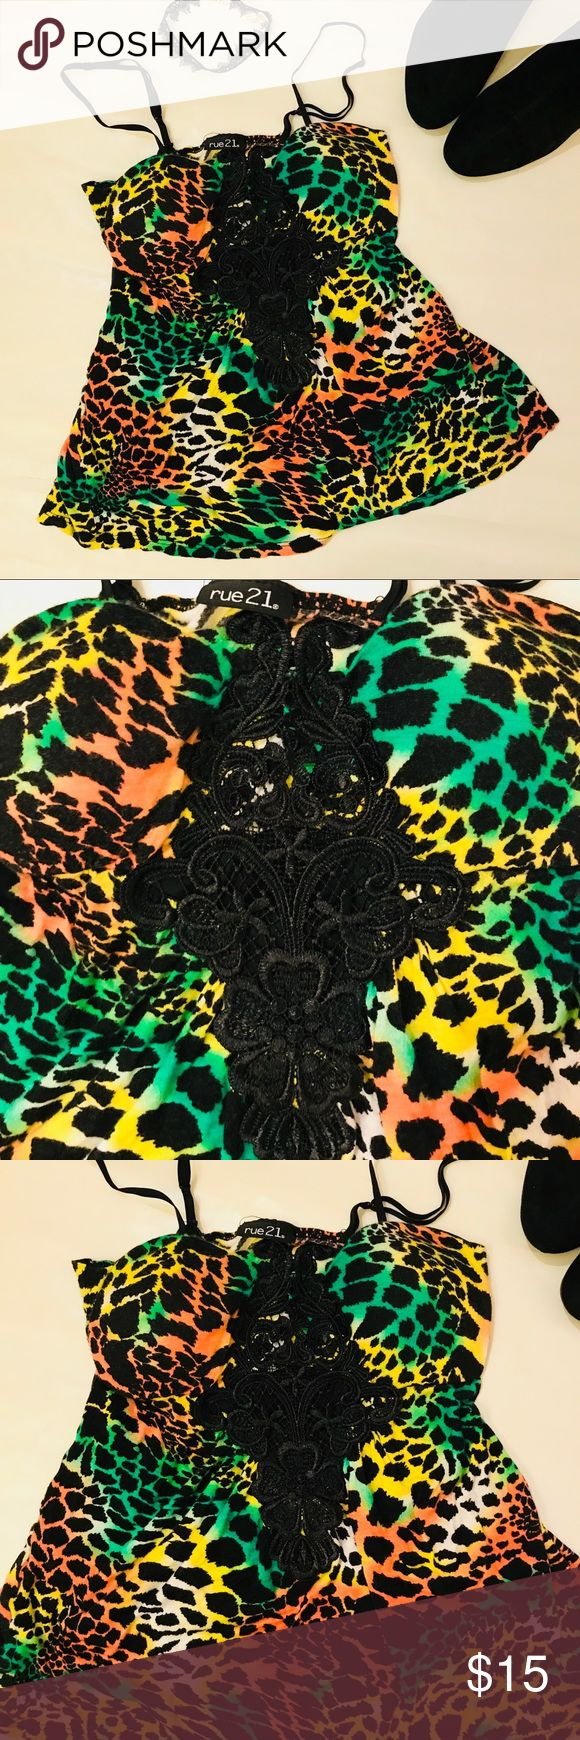 "Rue 21 Cami- Multicolored Animal Print Rue 21 Cami- Multicolored Animal Print with lacy embellished neckline and adjustable length spaghetti straps Beautiful, Bright and Fun!! 100% Rayon, Size Small LAY FLAT MEASUREMENTS (APPROX): Under Bust 13"", Length 17"" Rue 21 Tops Camisoles"